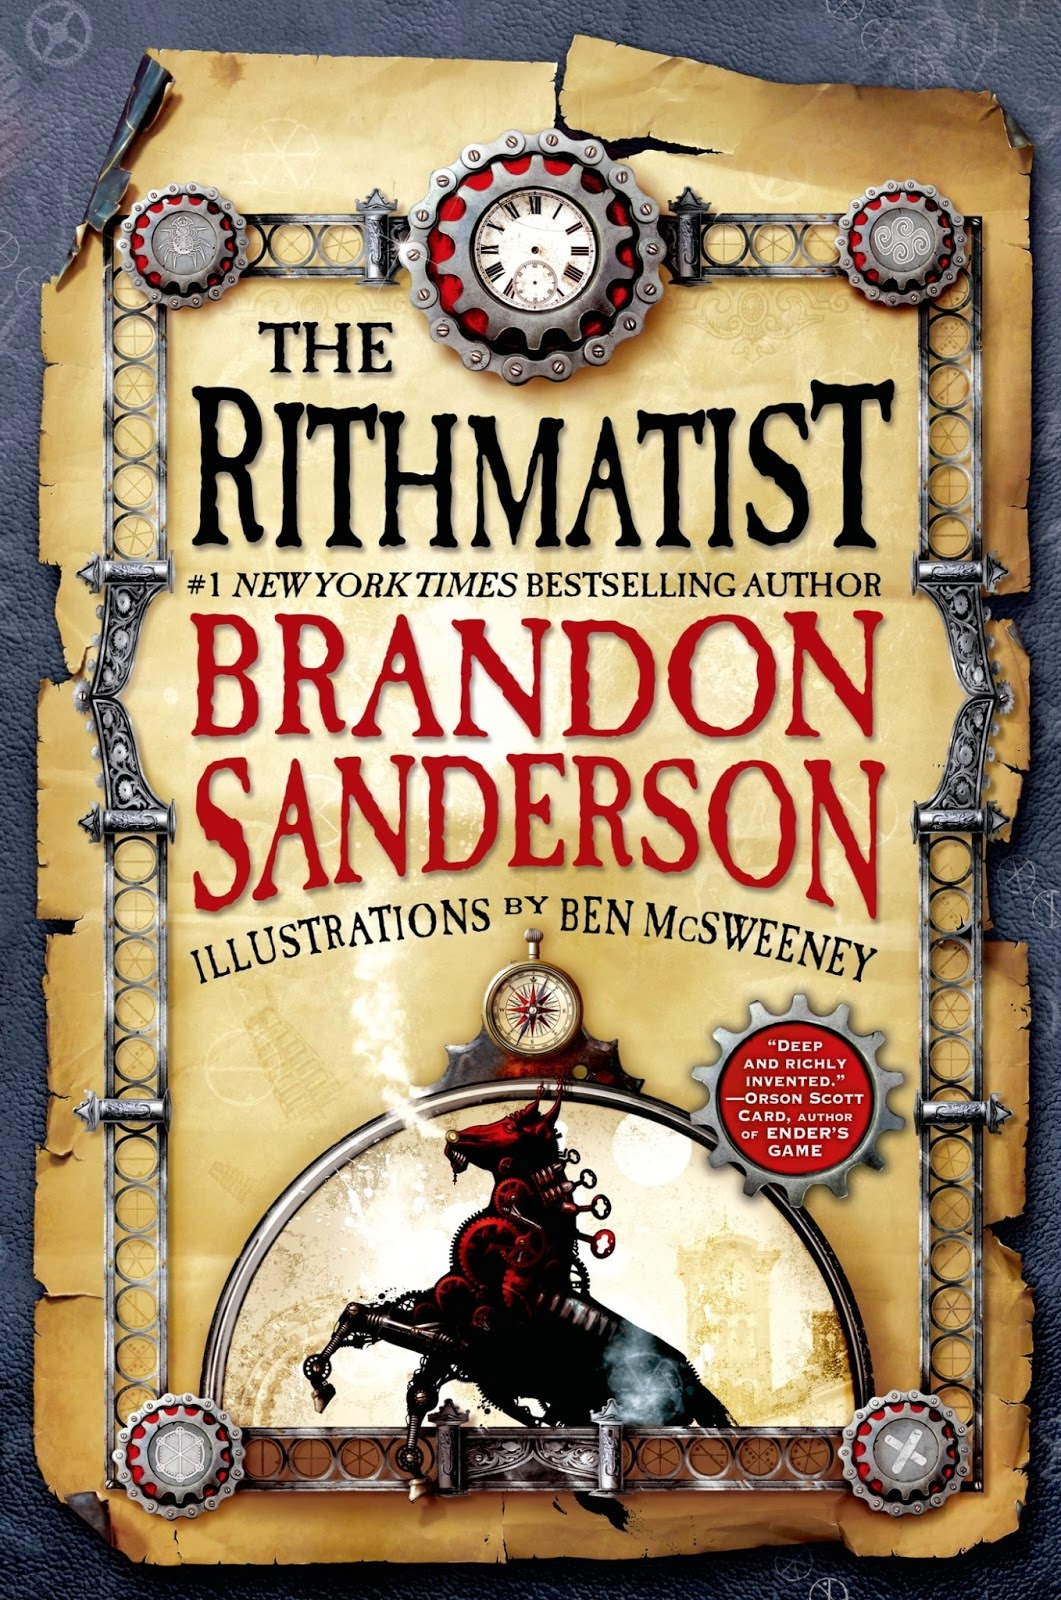 Book cover: The Rithmatist by Brandon Sanderson